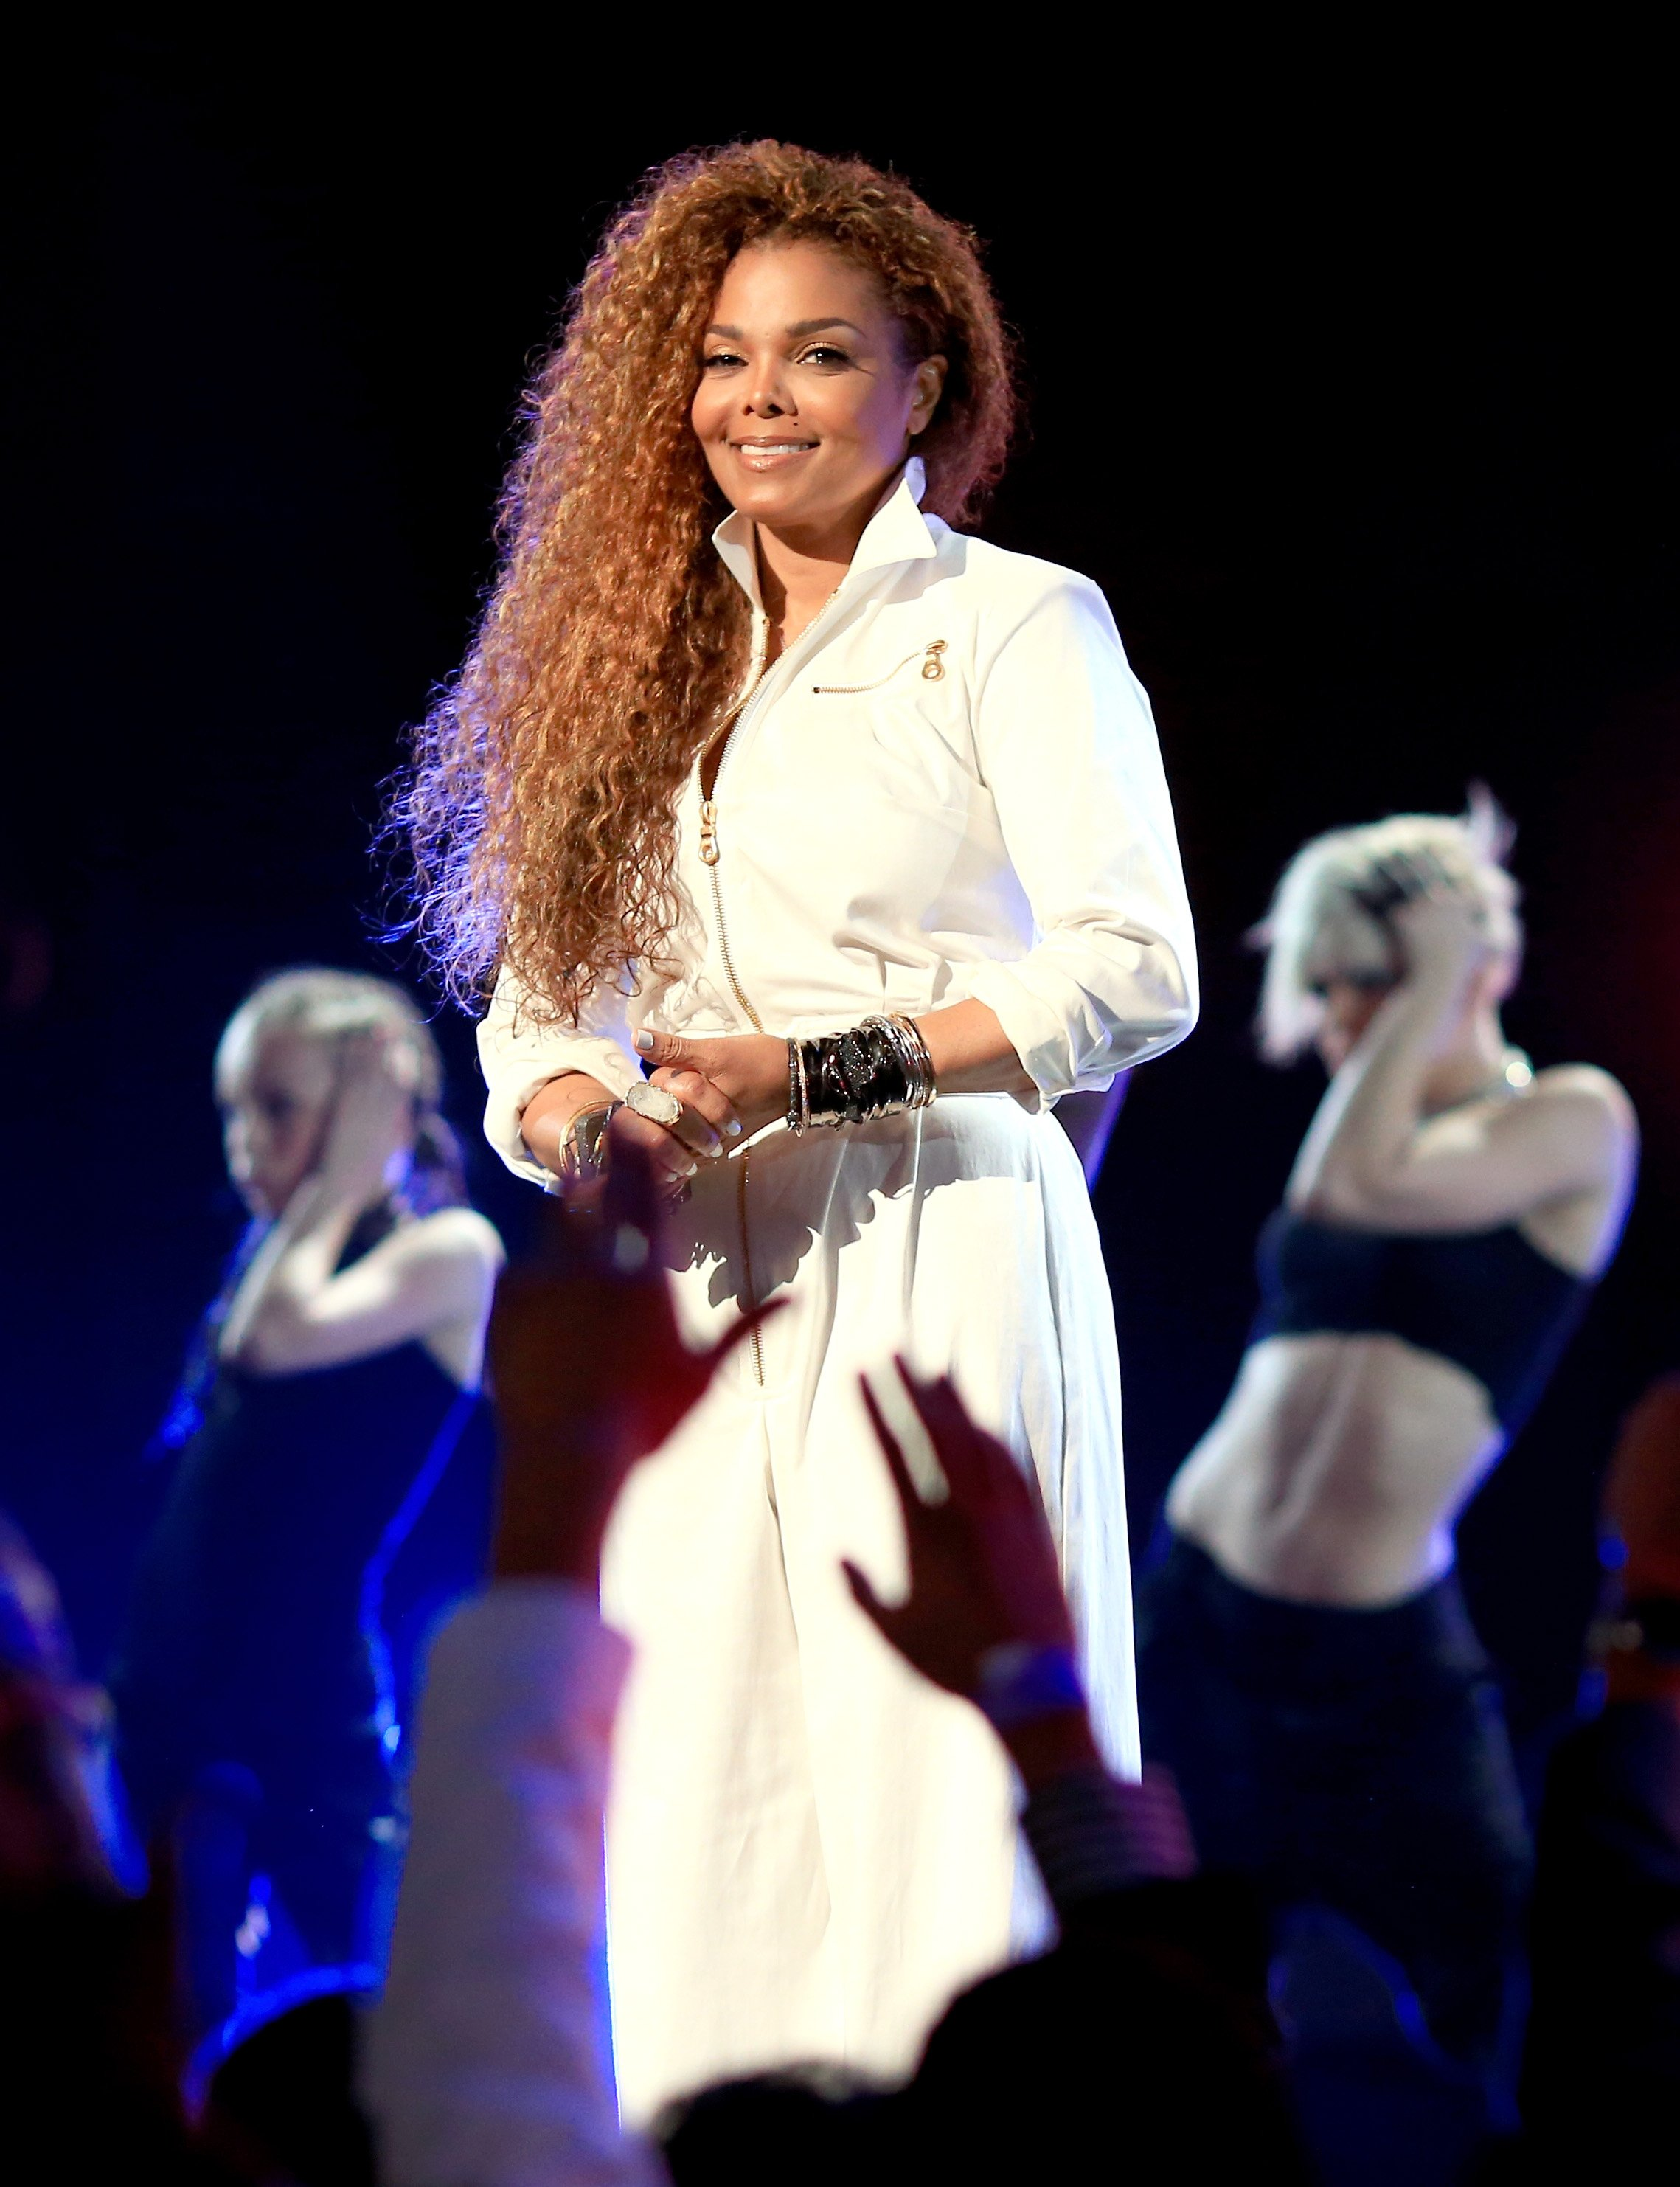 Janet Jackson at the BET Awards on June 28, 2015 in California | Photo: Getty Images